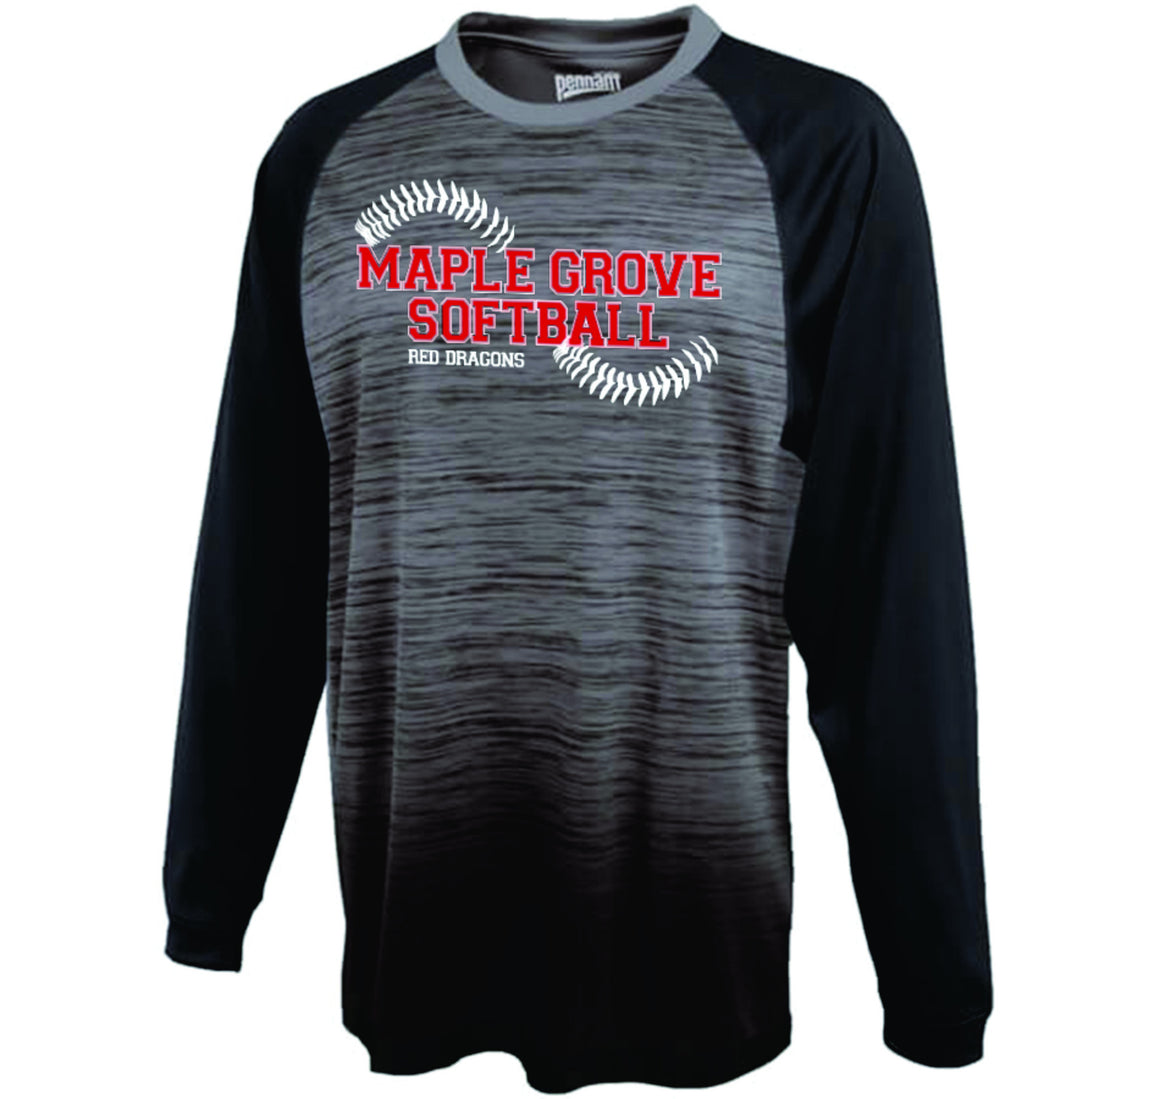 MG SOFTBALL - LONG SLEEVE PERFORMANCE TSHIRT